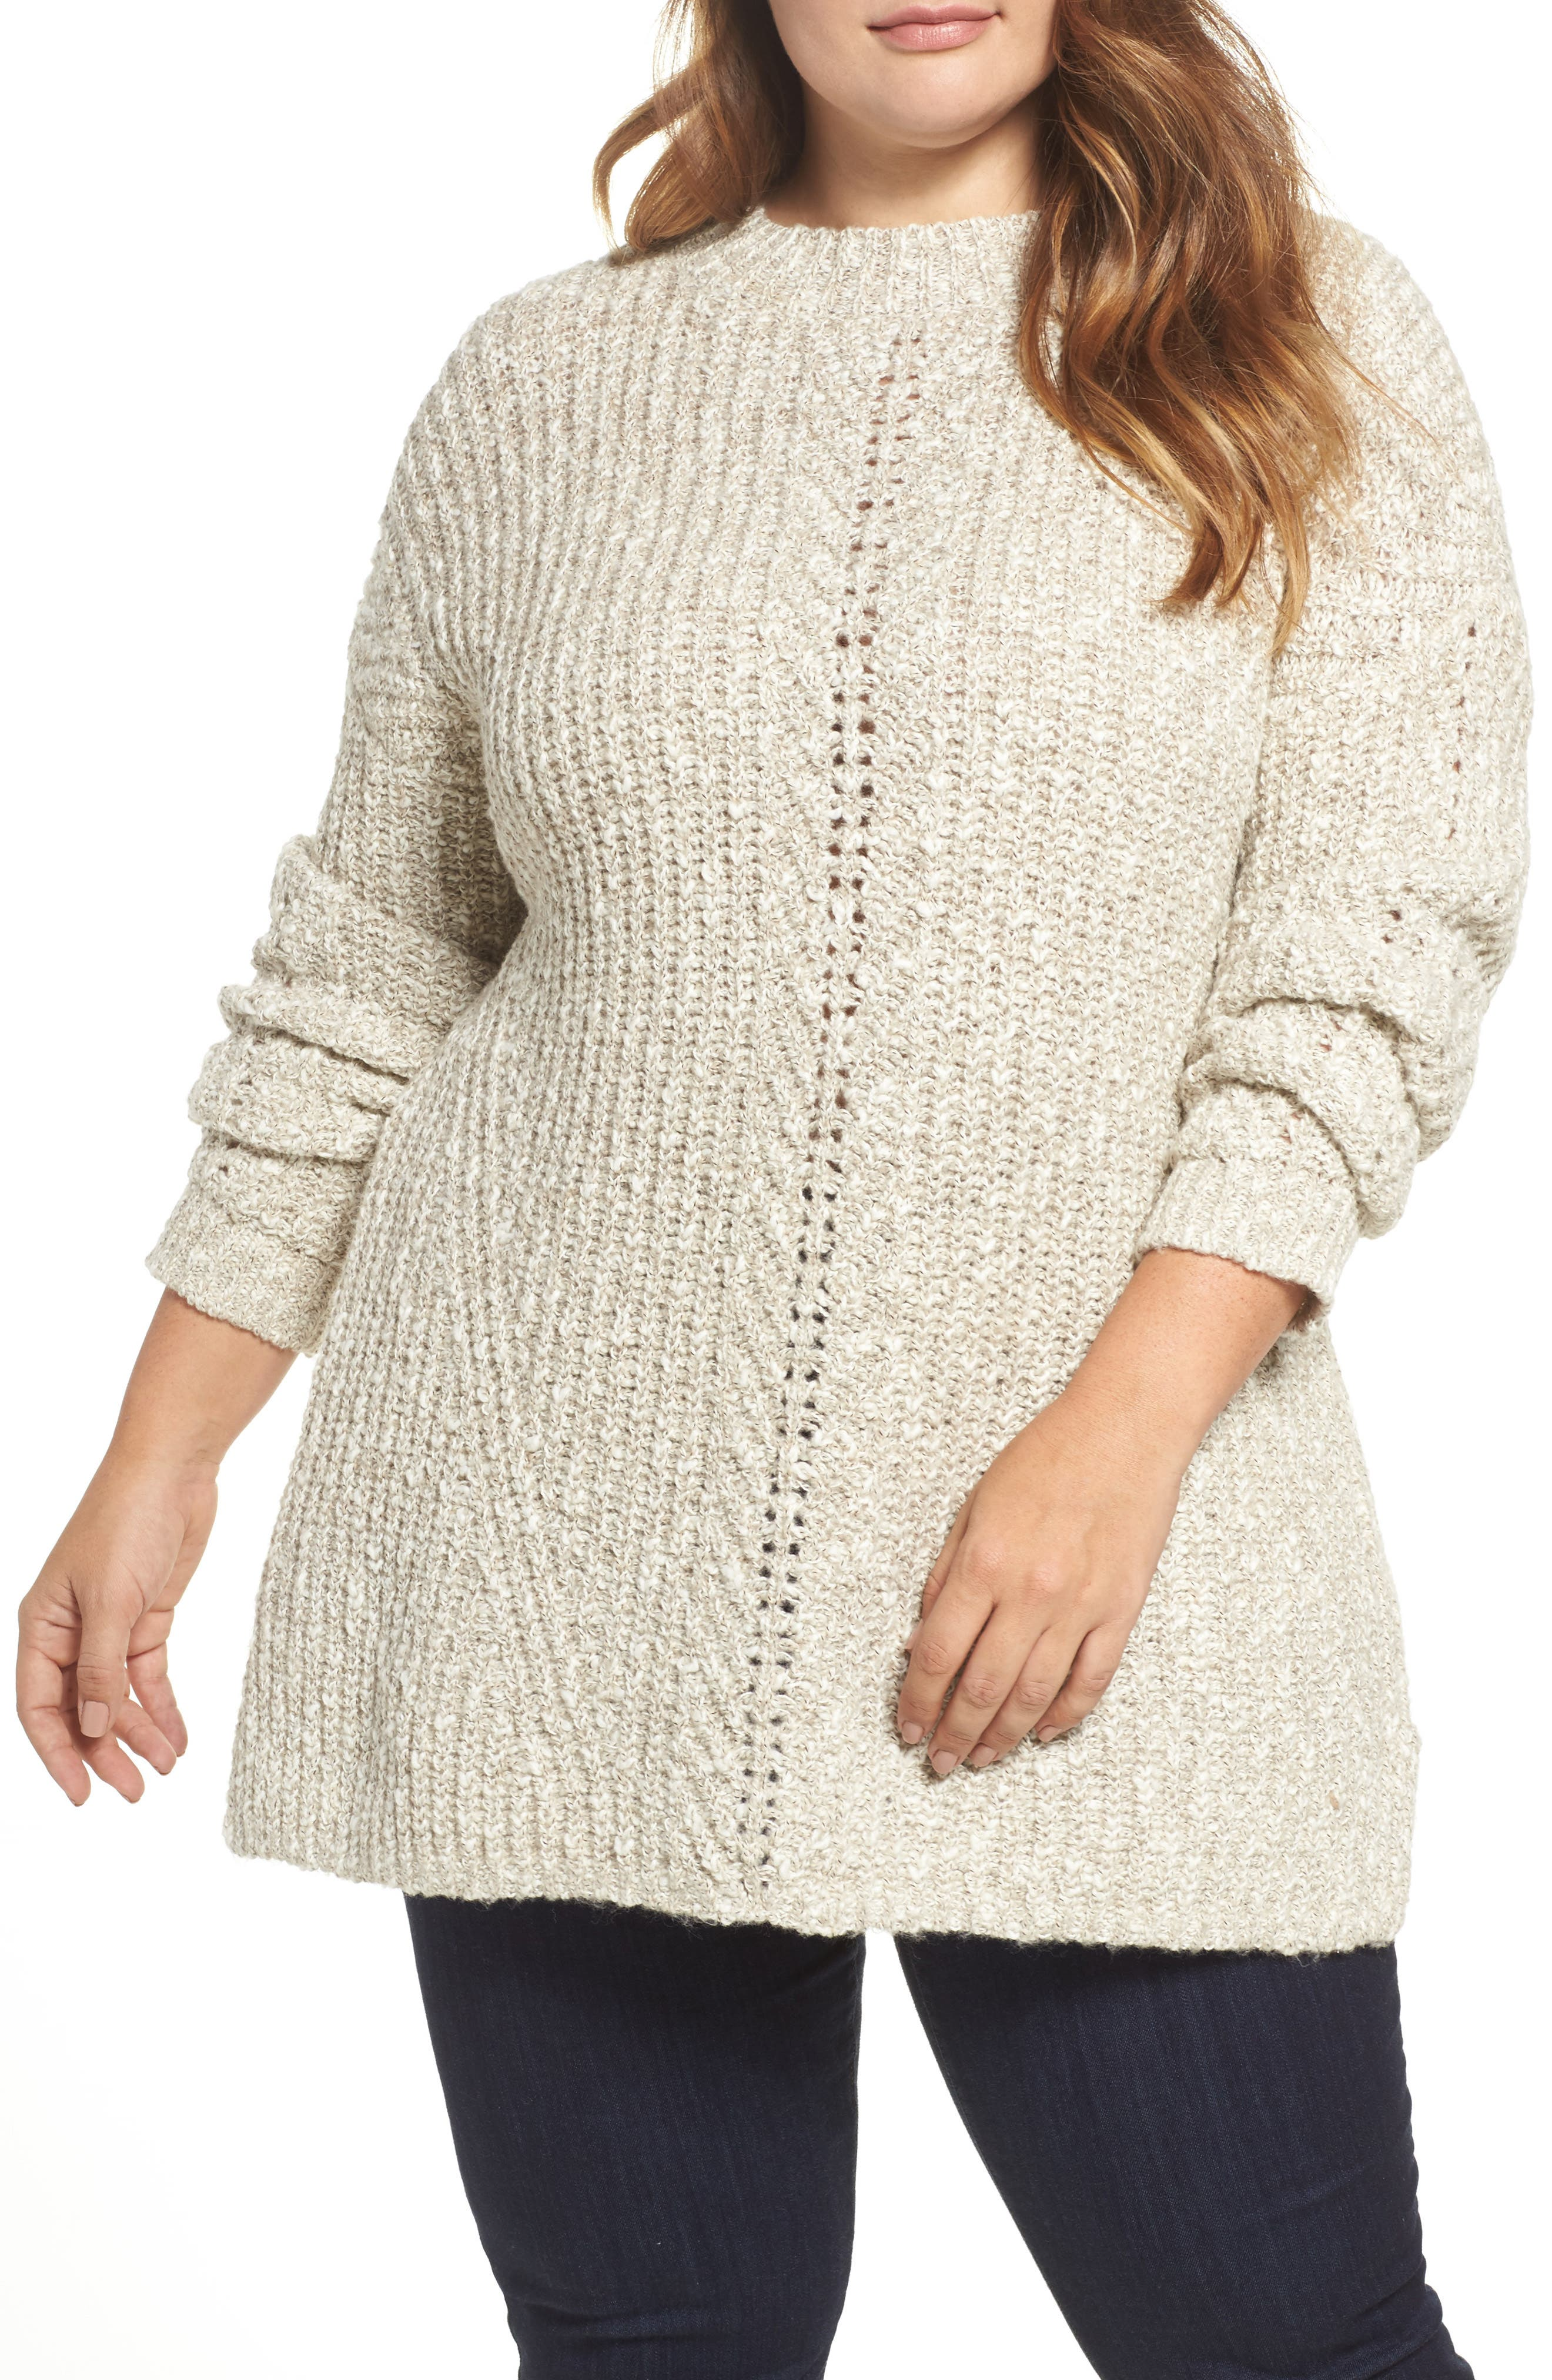 Open Stitch Sweater,                             Main thumbnail 1, color,                             250